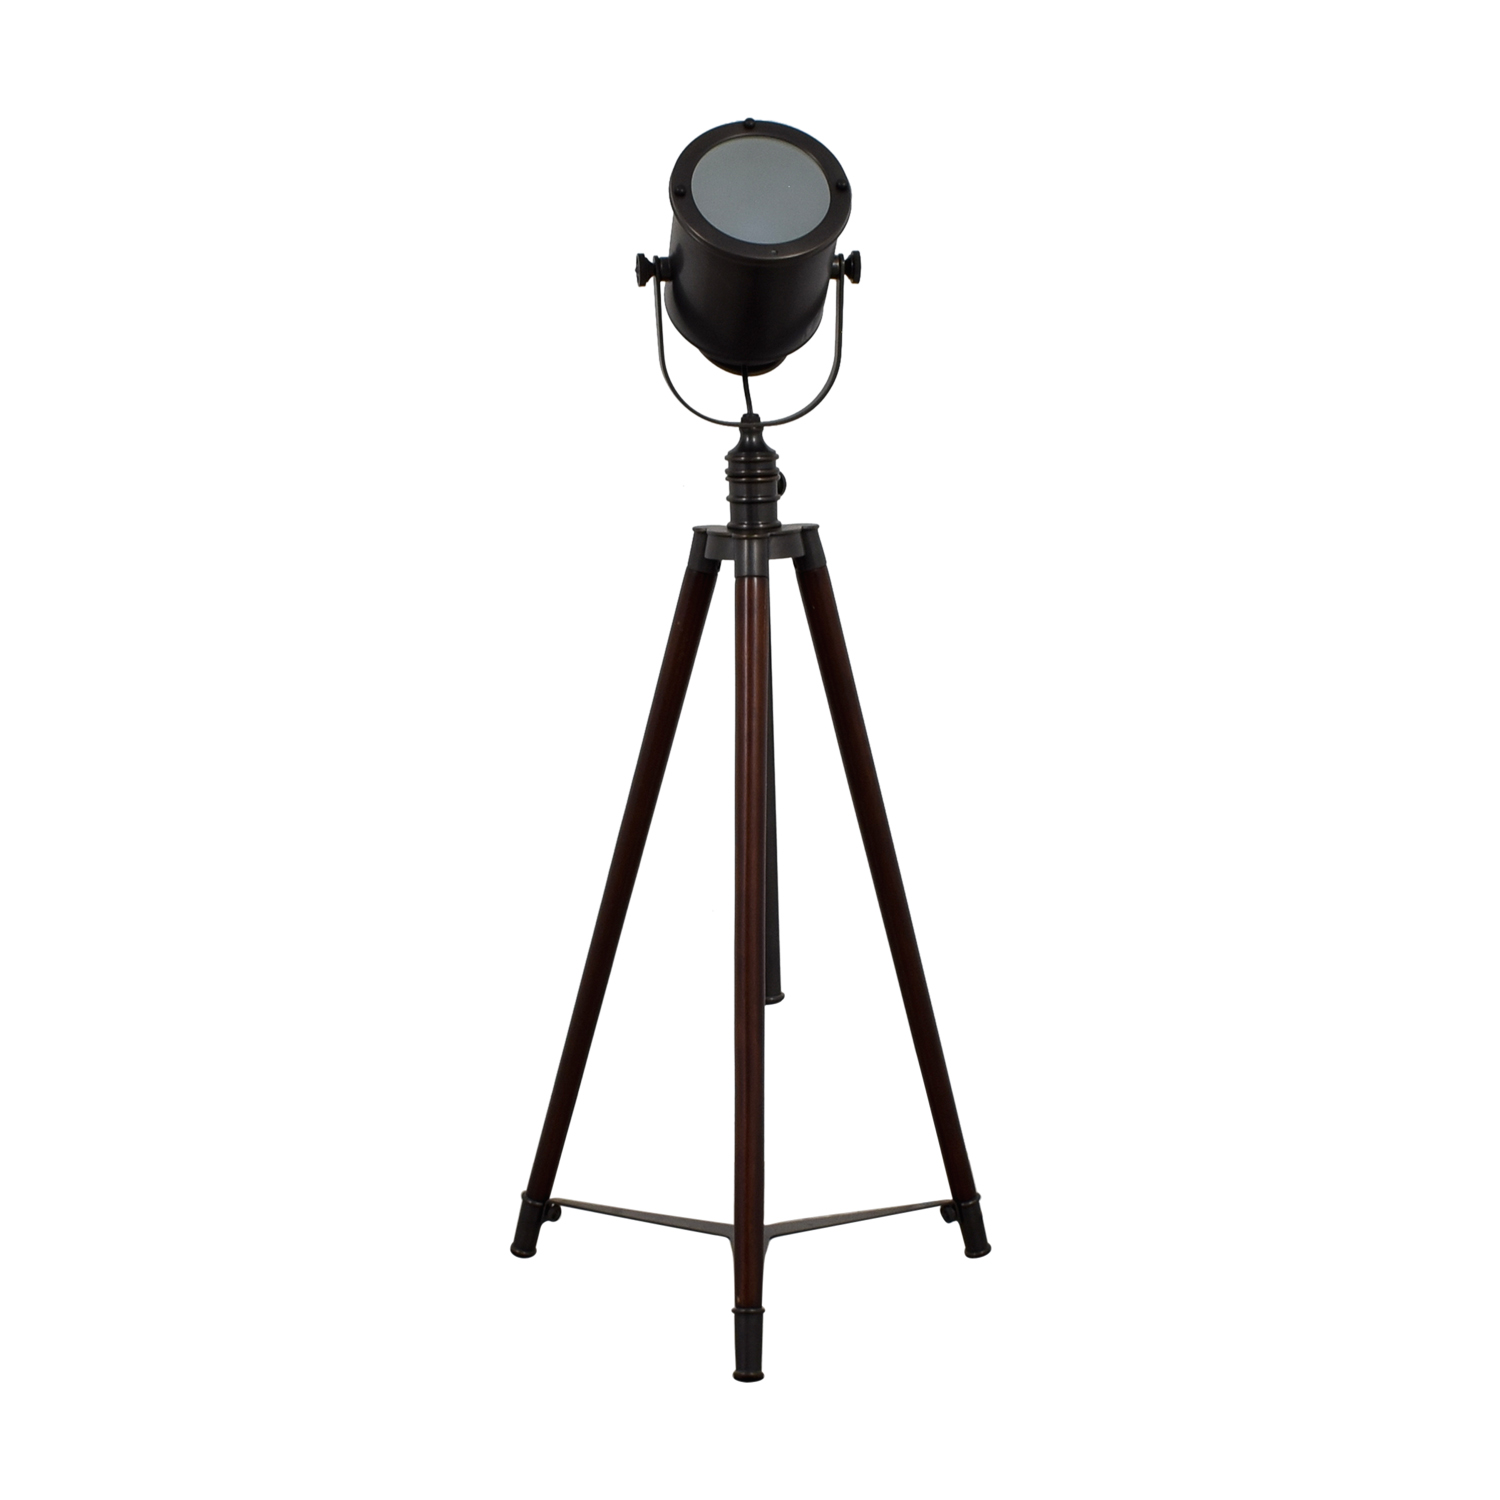 Pottery Barn Spotlight Tripod Floor Lamp sale